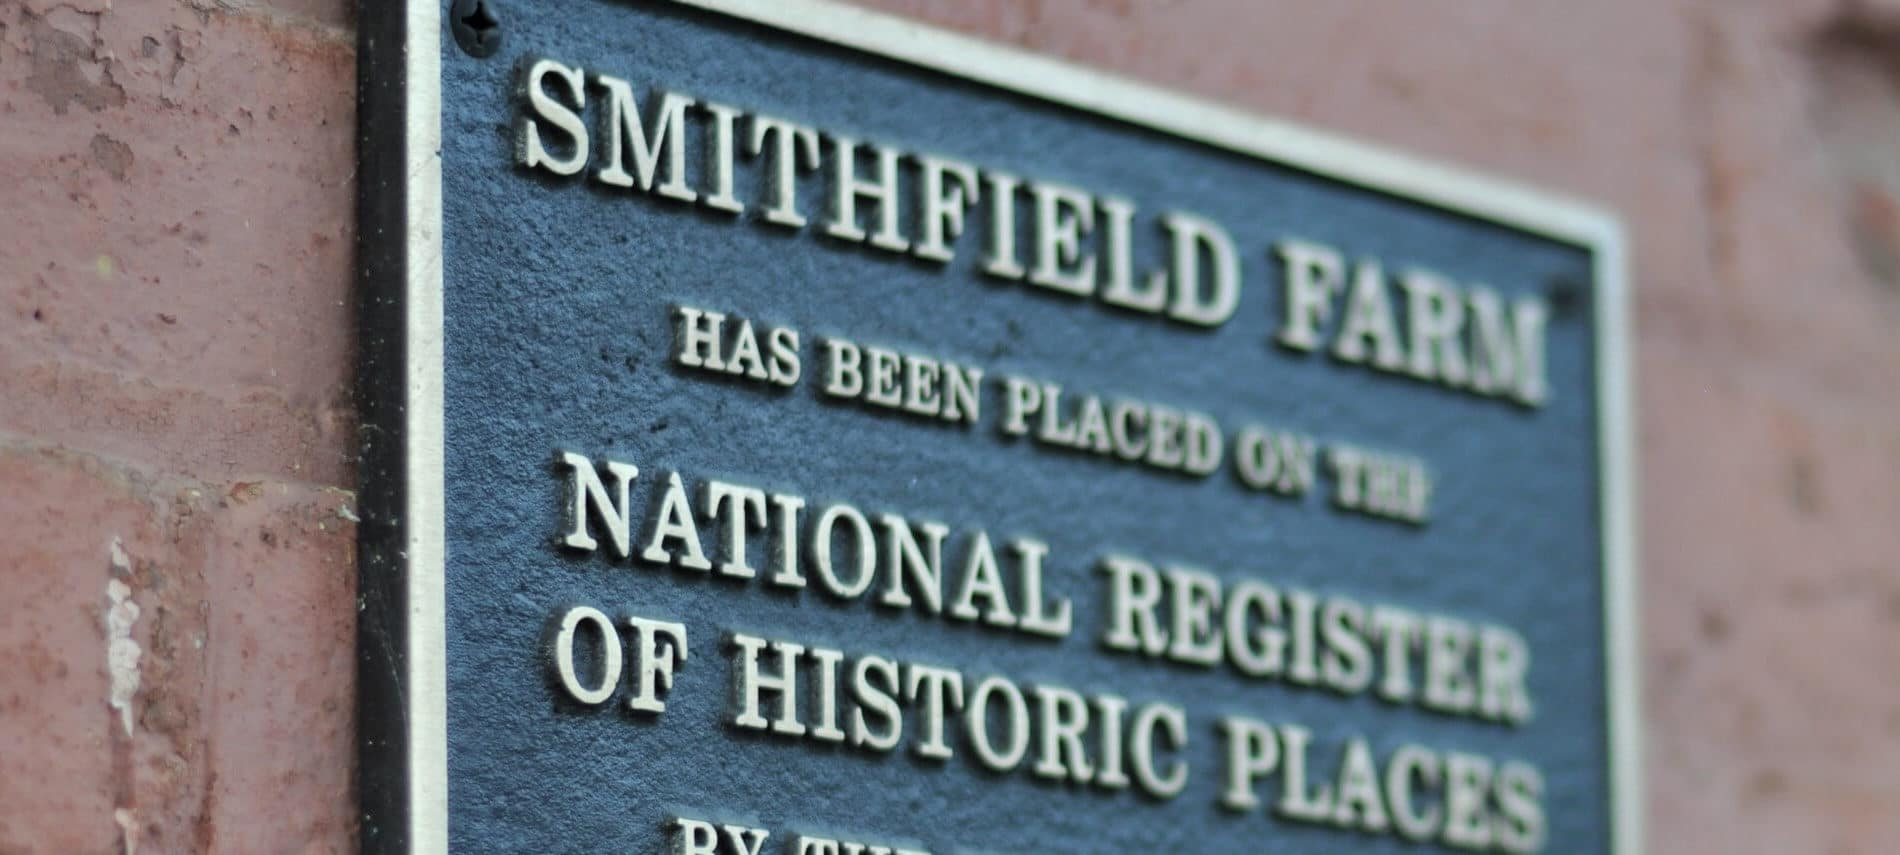 Green plaque saying that Smithfiled Farm is a historic place